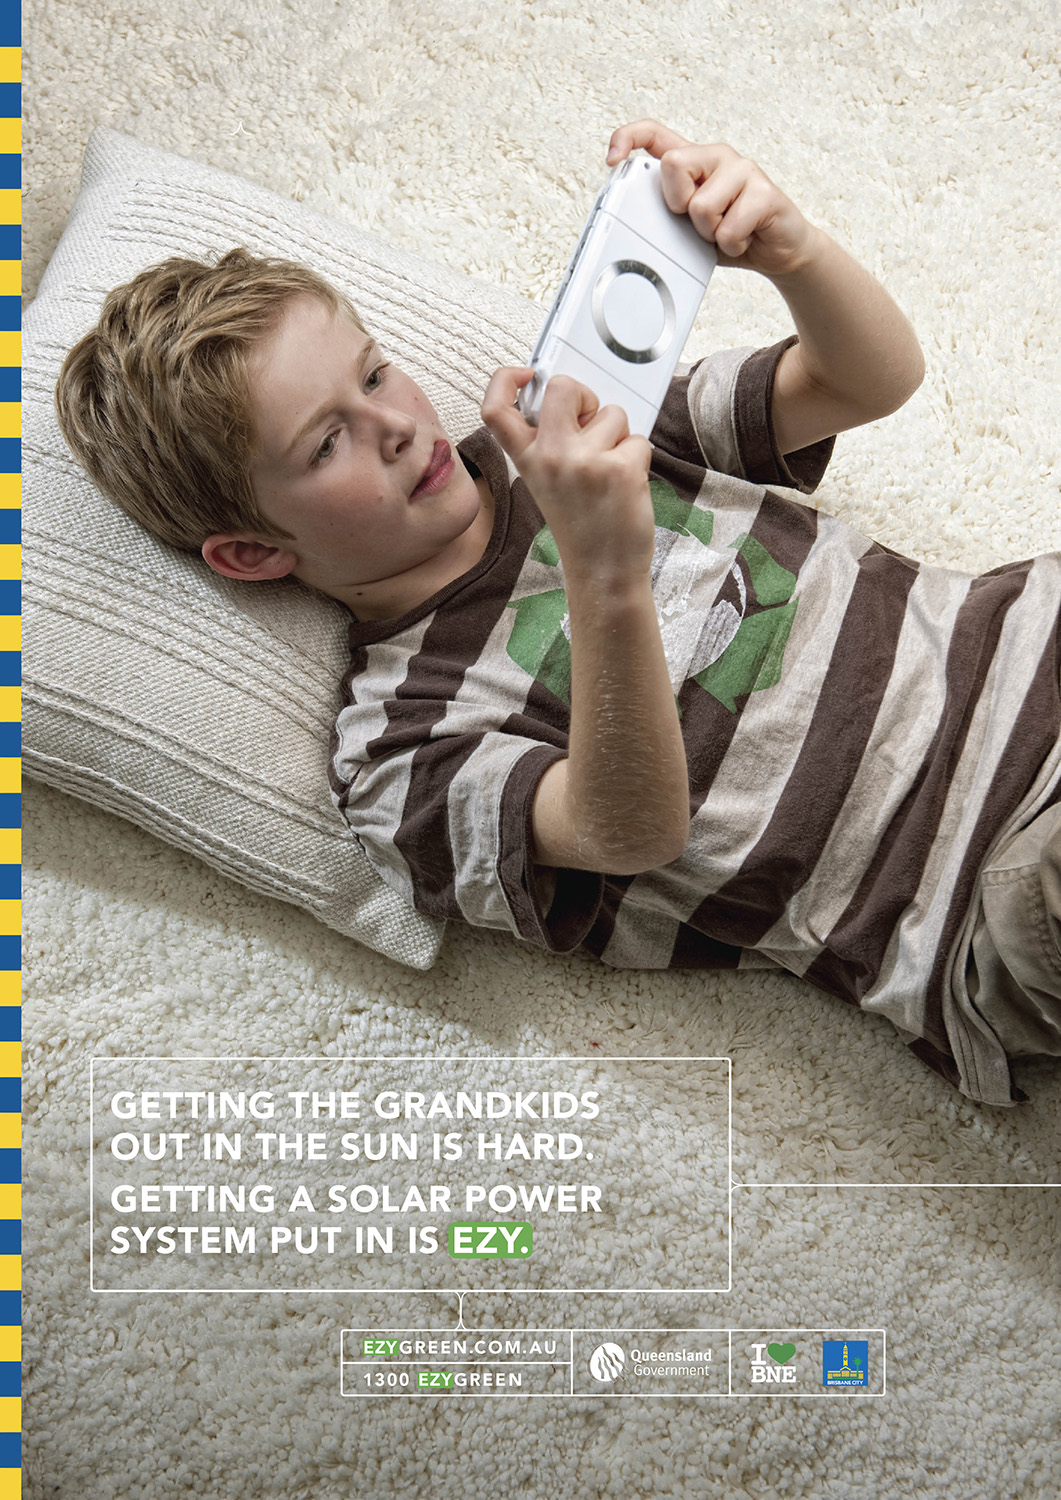 image of AARONTAIT COPYRIGHTED 2014 116 KID ON COMPUTER GAME ADVERTISING